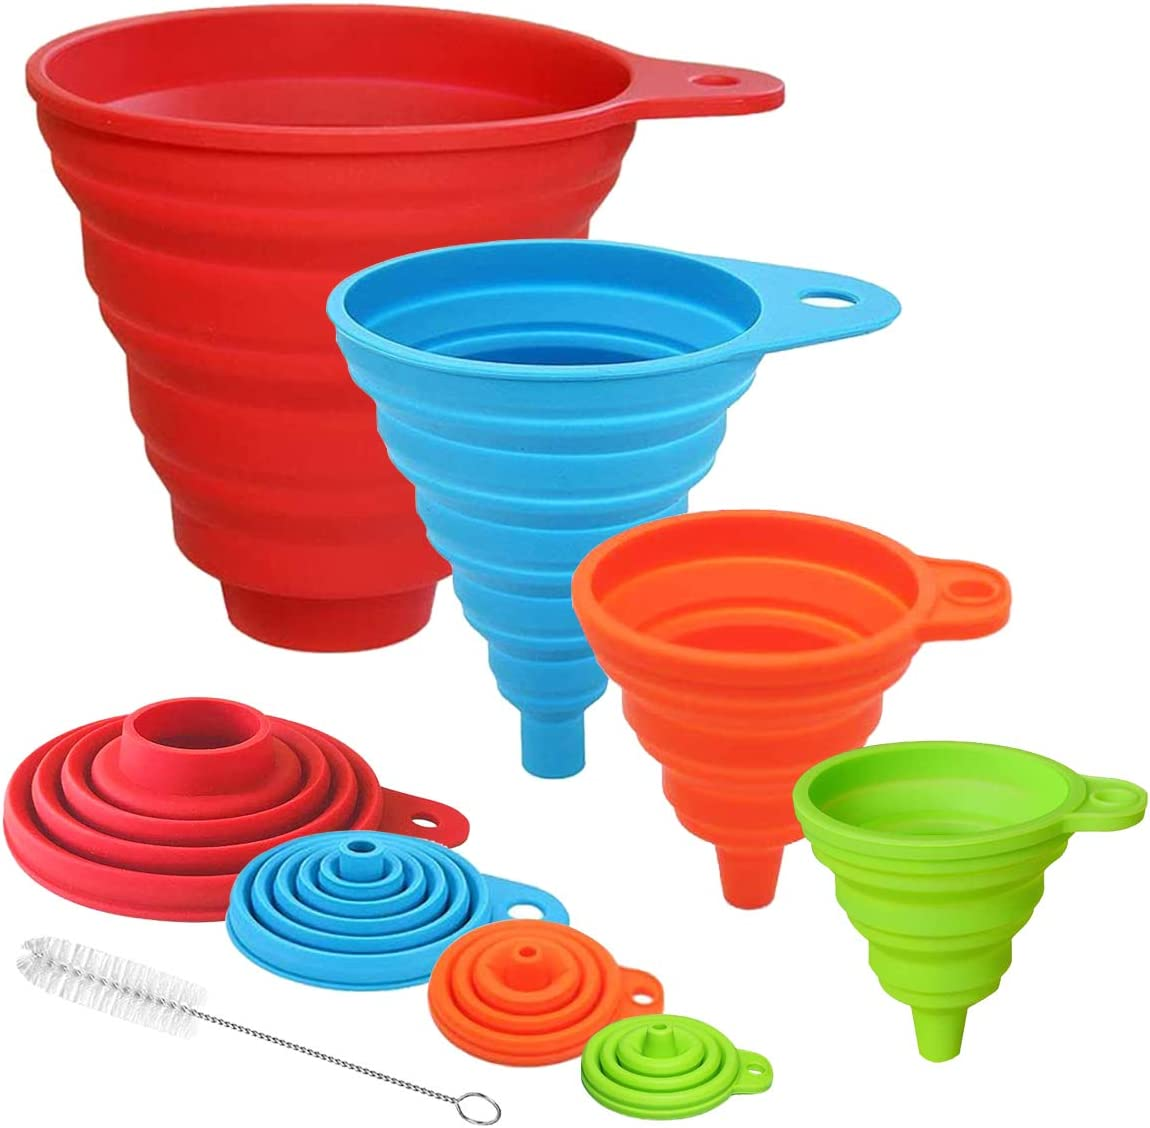 4Pcs Kitchen Funnels for Filling Bottles Canning, Food Grade Silicone Collapsible Funnel Set, Large Funnel for Wide Mouth Jar, Small/Mini Funnel for Transfer Oil Powder